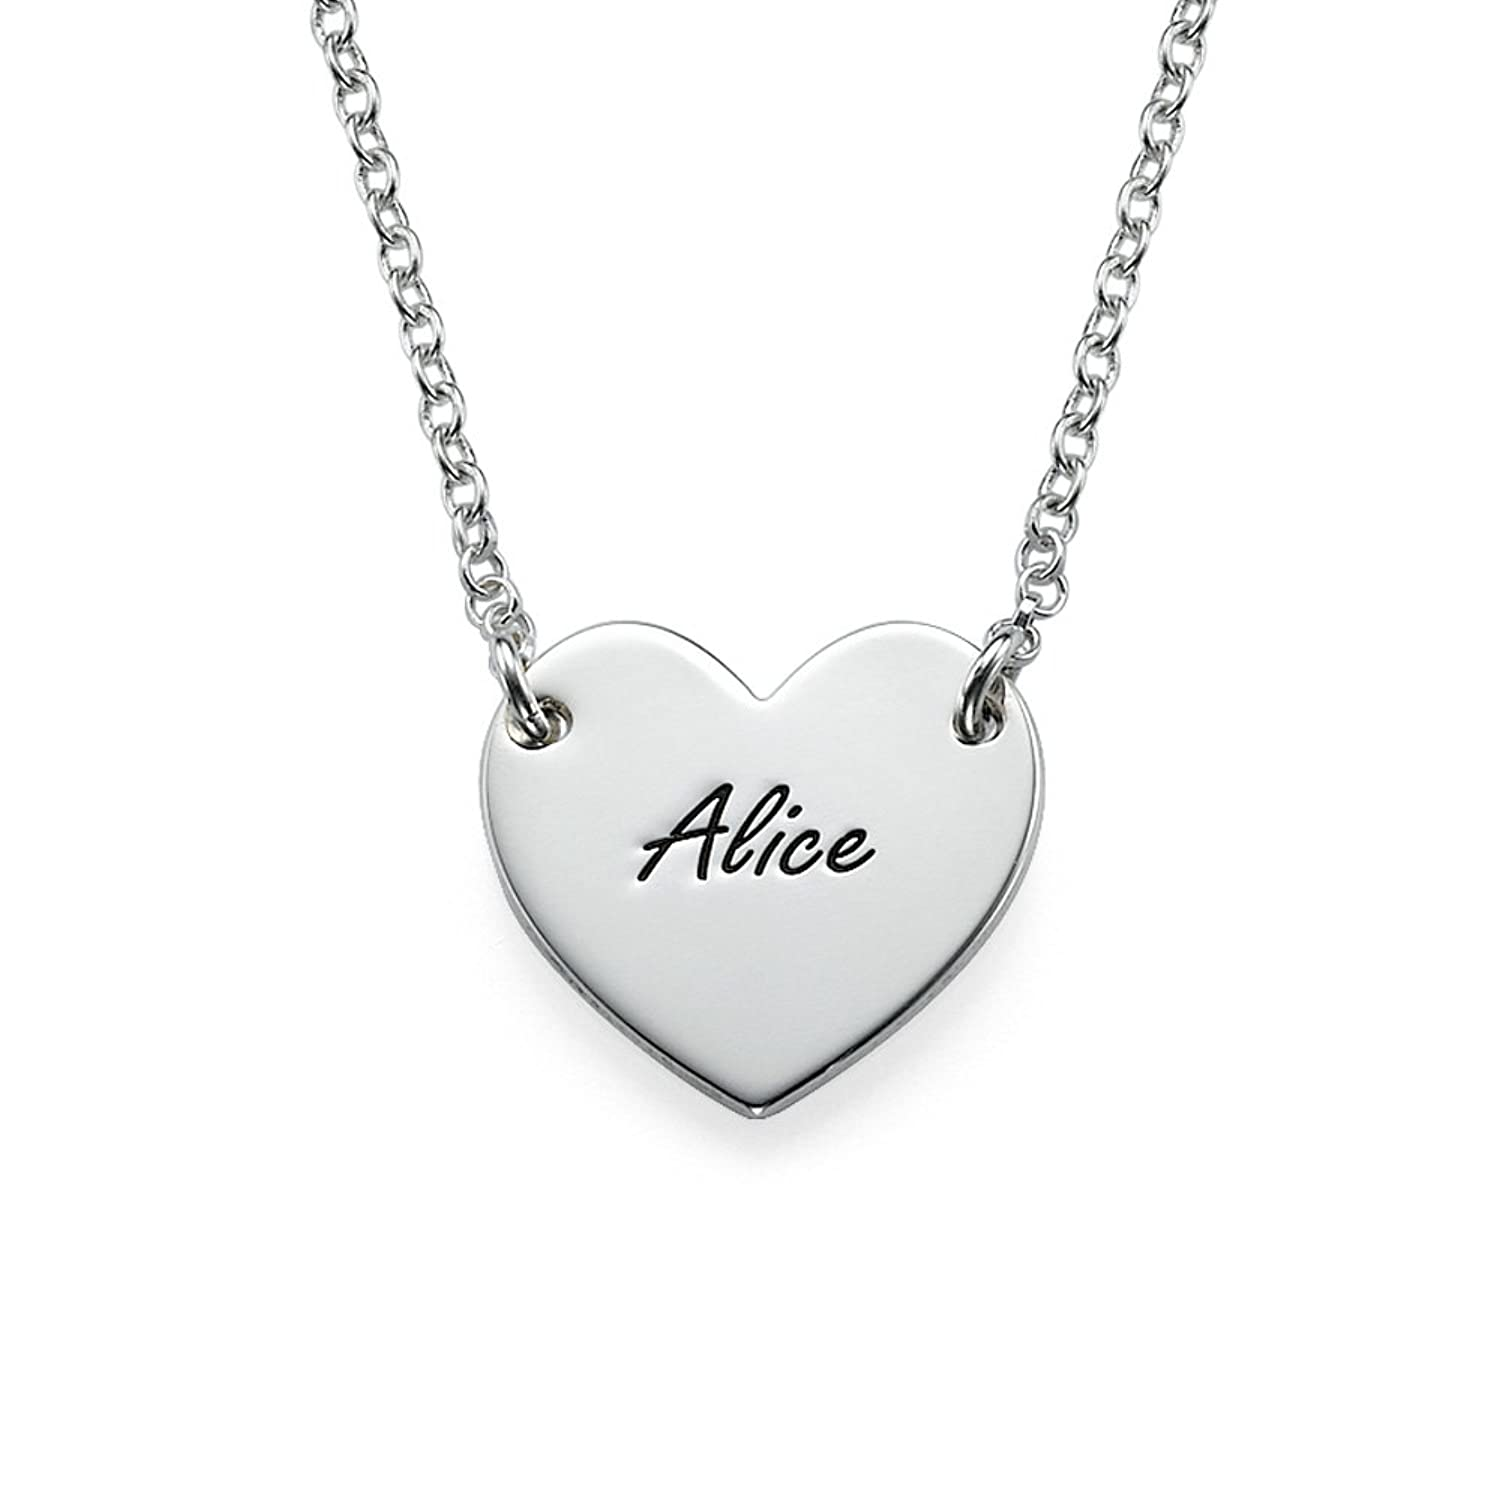 arrow return tiffany pendants fit br to jewelry g photo necklaces and fmt tag etched charm constrain sterling necklace heart hei wid ed id in m